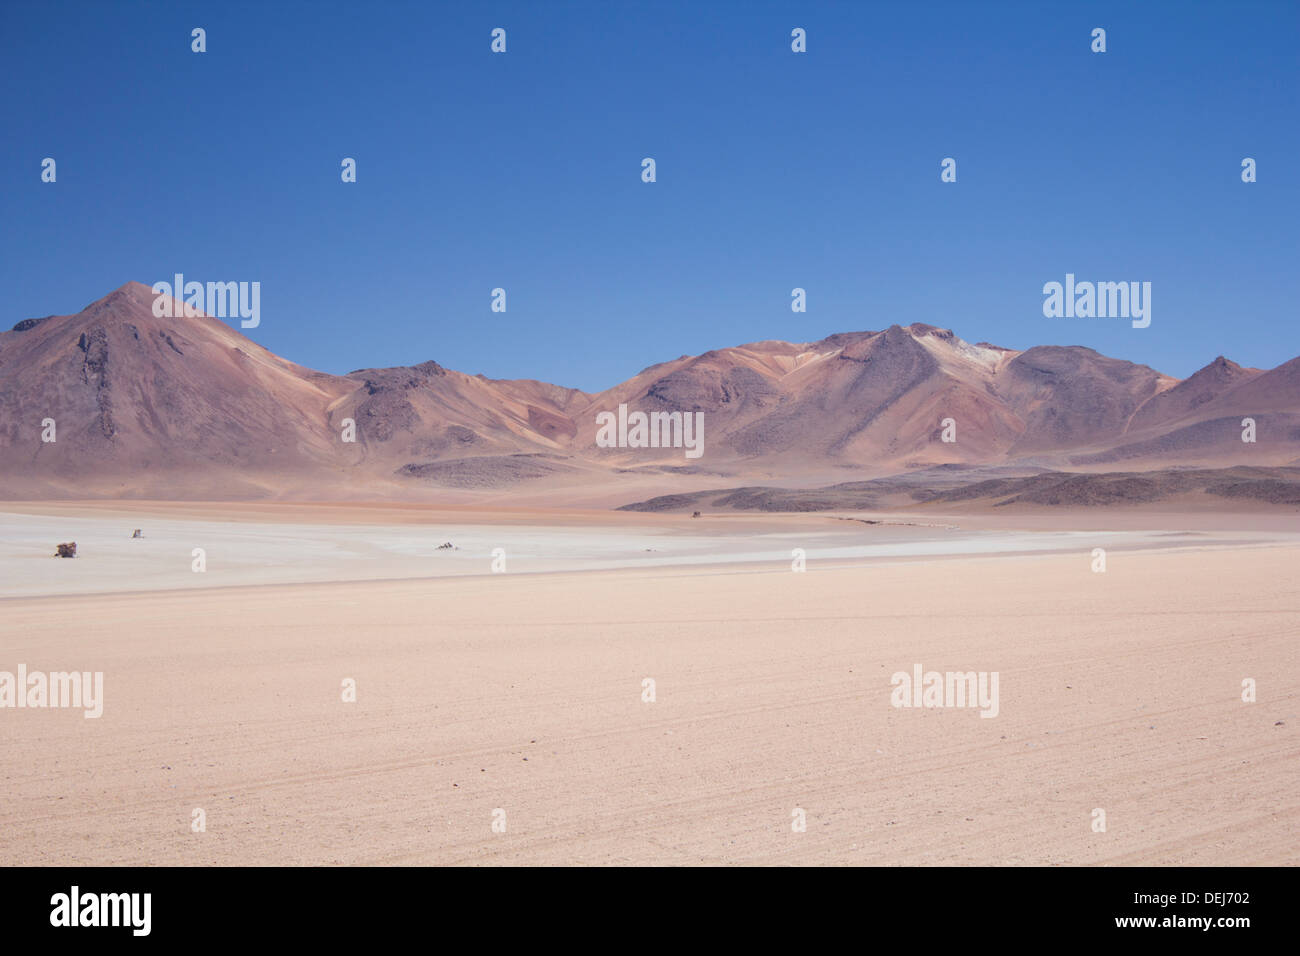 Rocks in the desert on the Bolivian Altiplano, South America - Stock Image